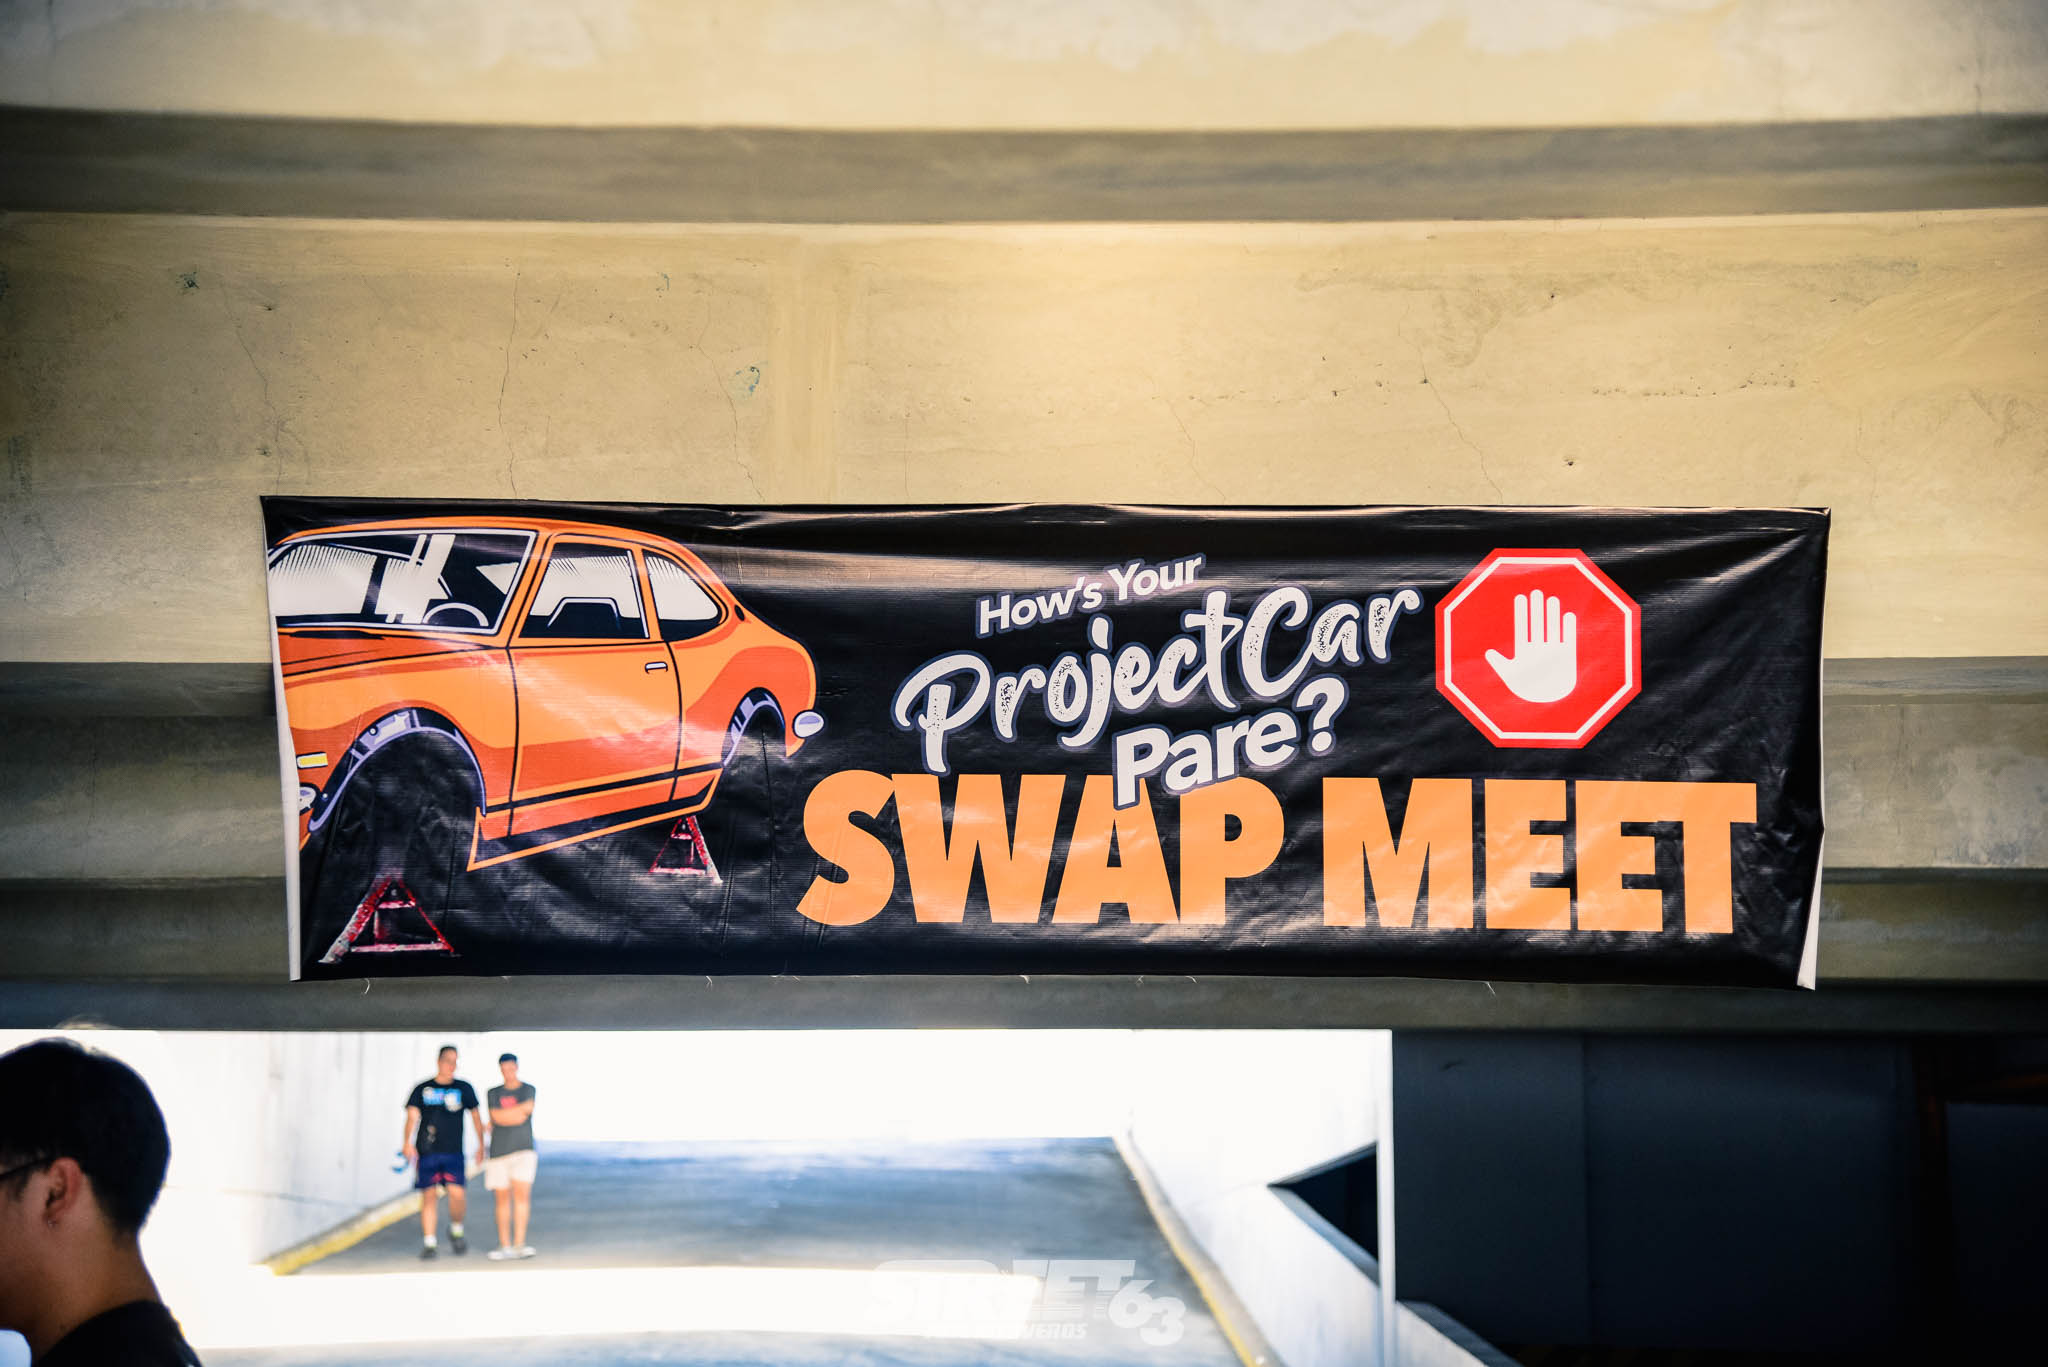 How's Your Project Car Pare's Swap Meet 9